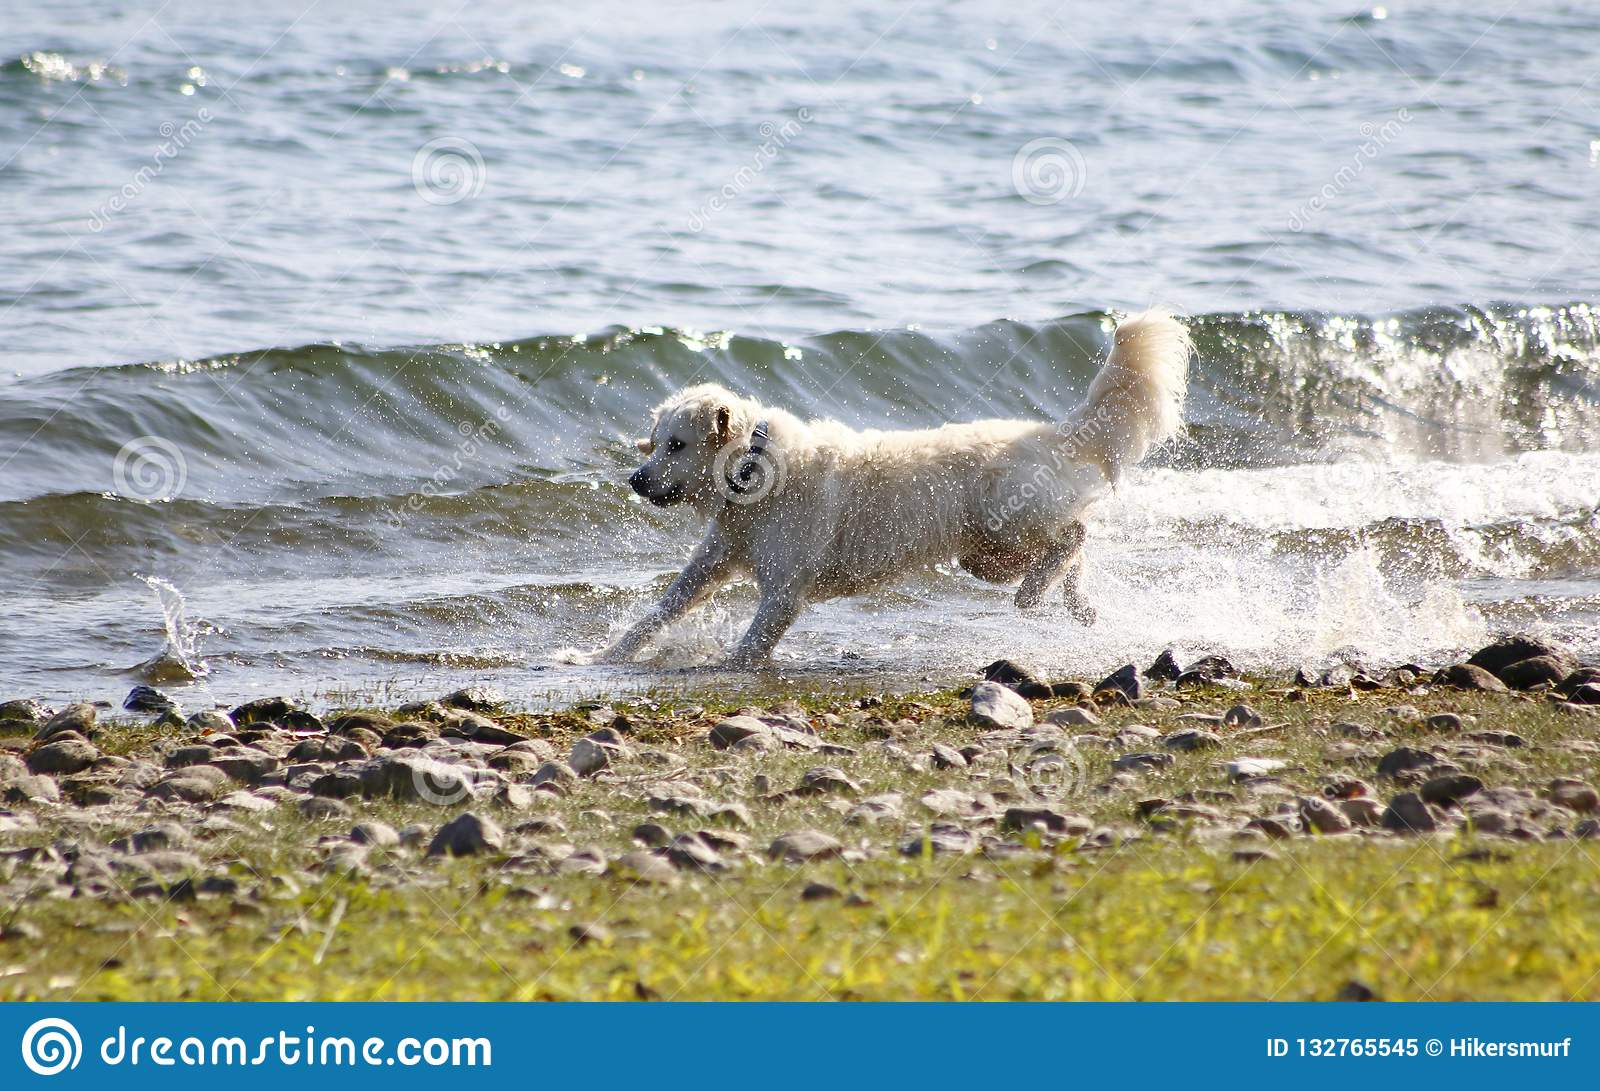 Dog, Golden Redriver jumps in the water, on the shore of the lake, around and enjoys the water drops, splashes